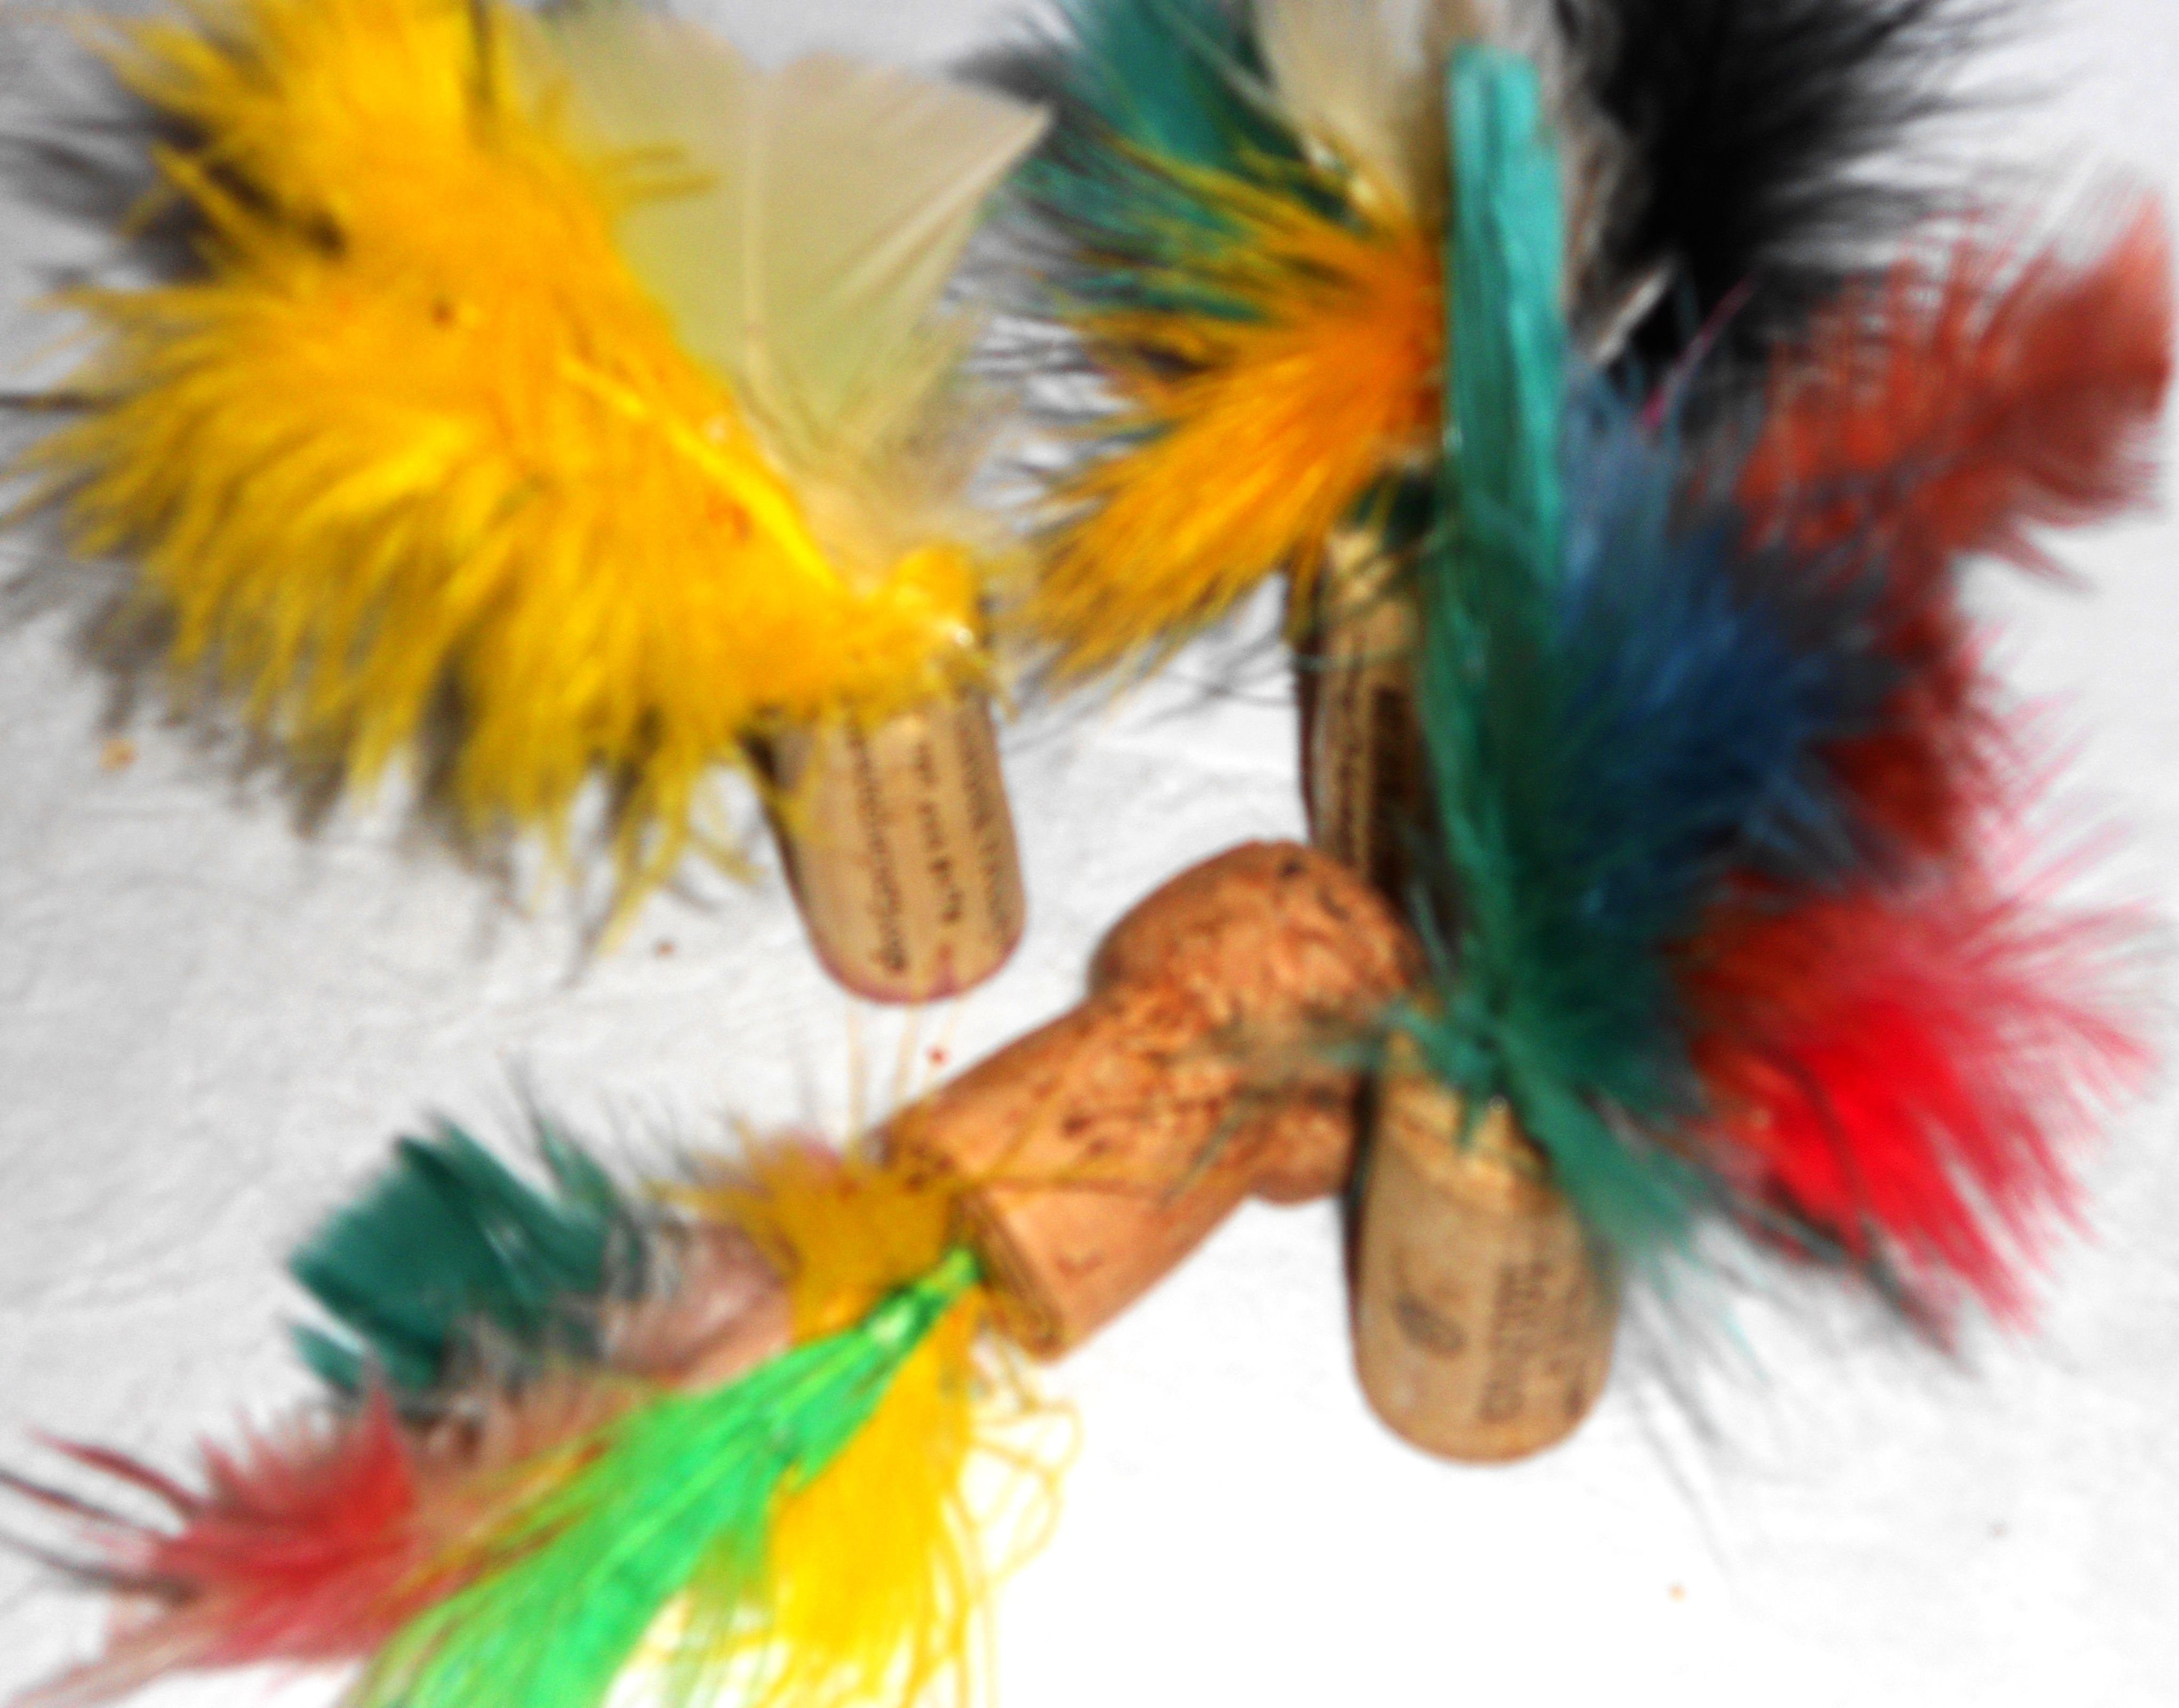 Cat toys made from wine corks, glue and feathers. Keep in sealed tin with catnip. Cats love them!